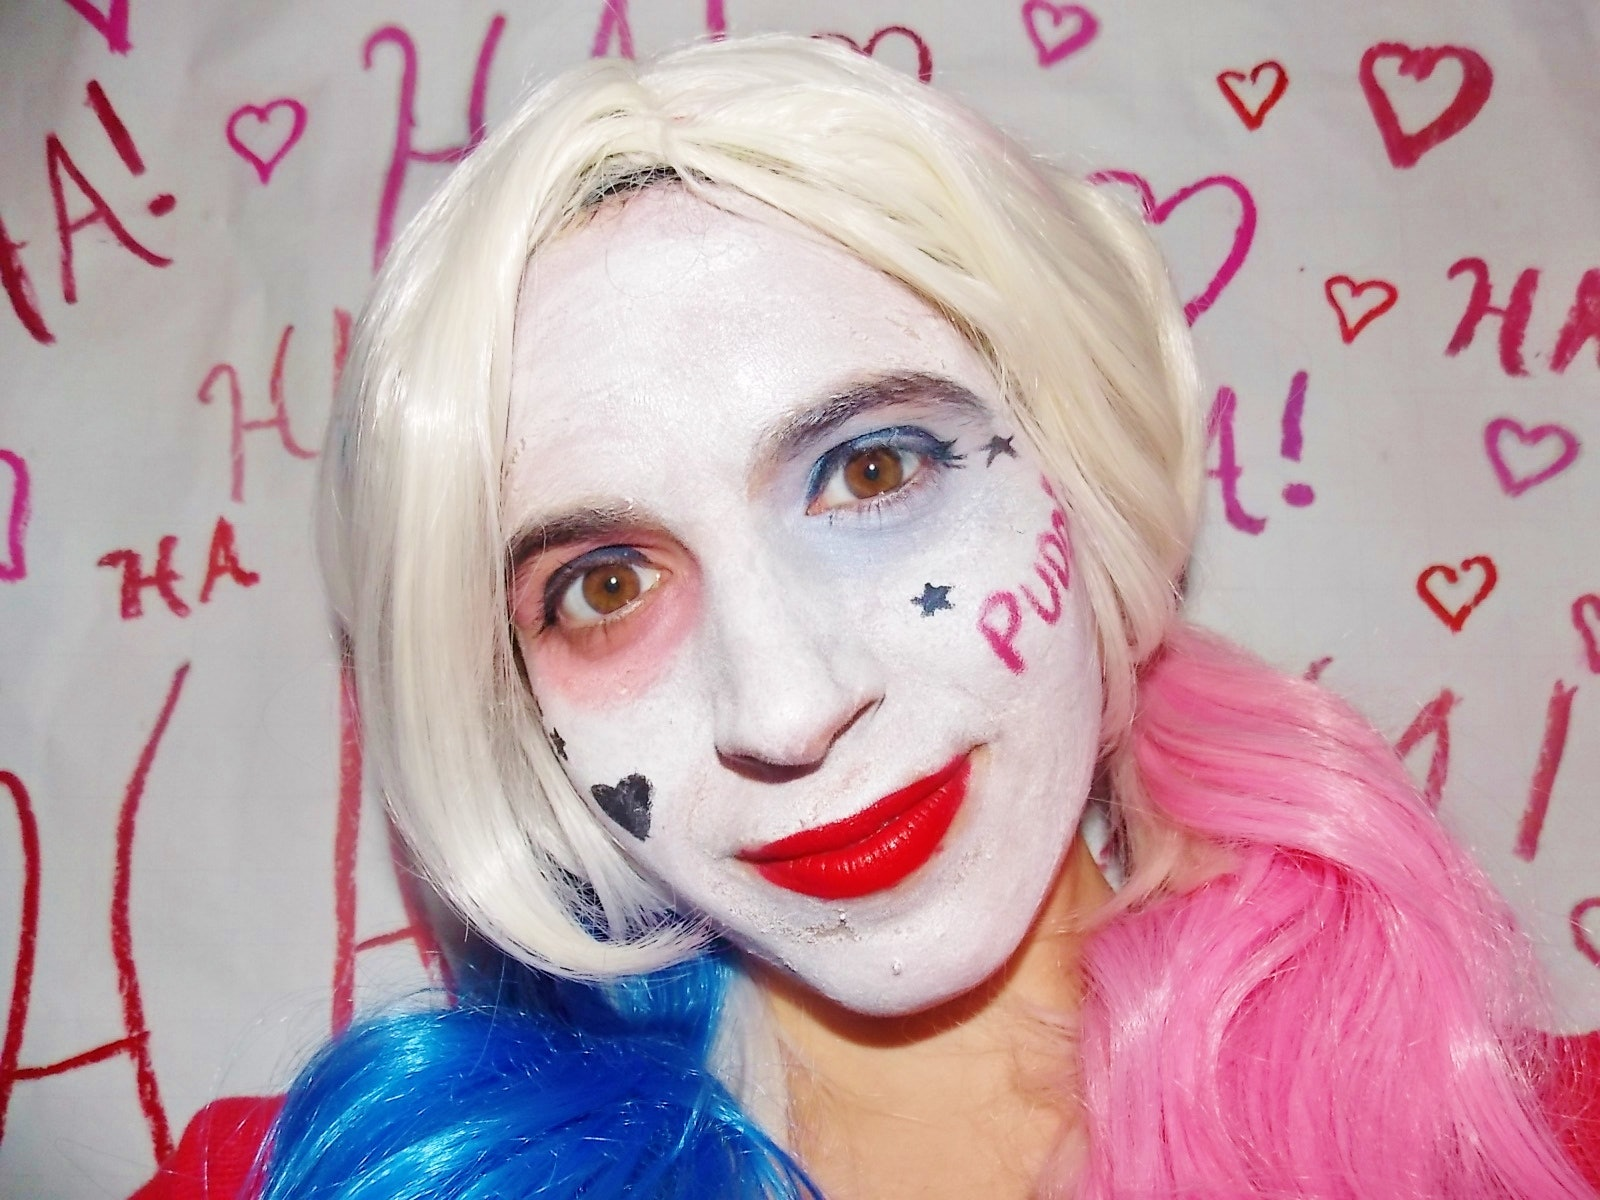 A Harley Quinn Makeup Tutorial So You Can Get A \u0027Suicide